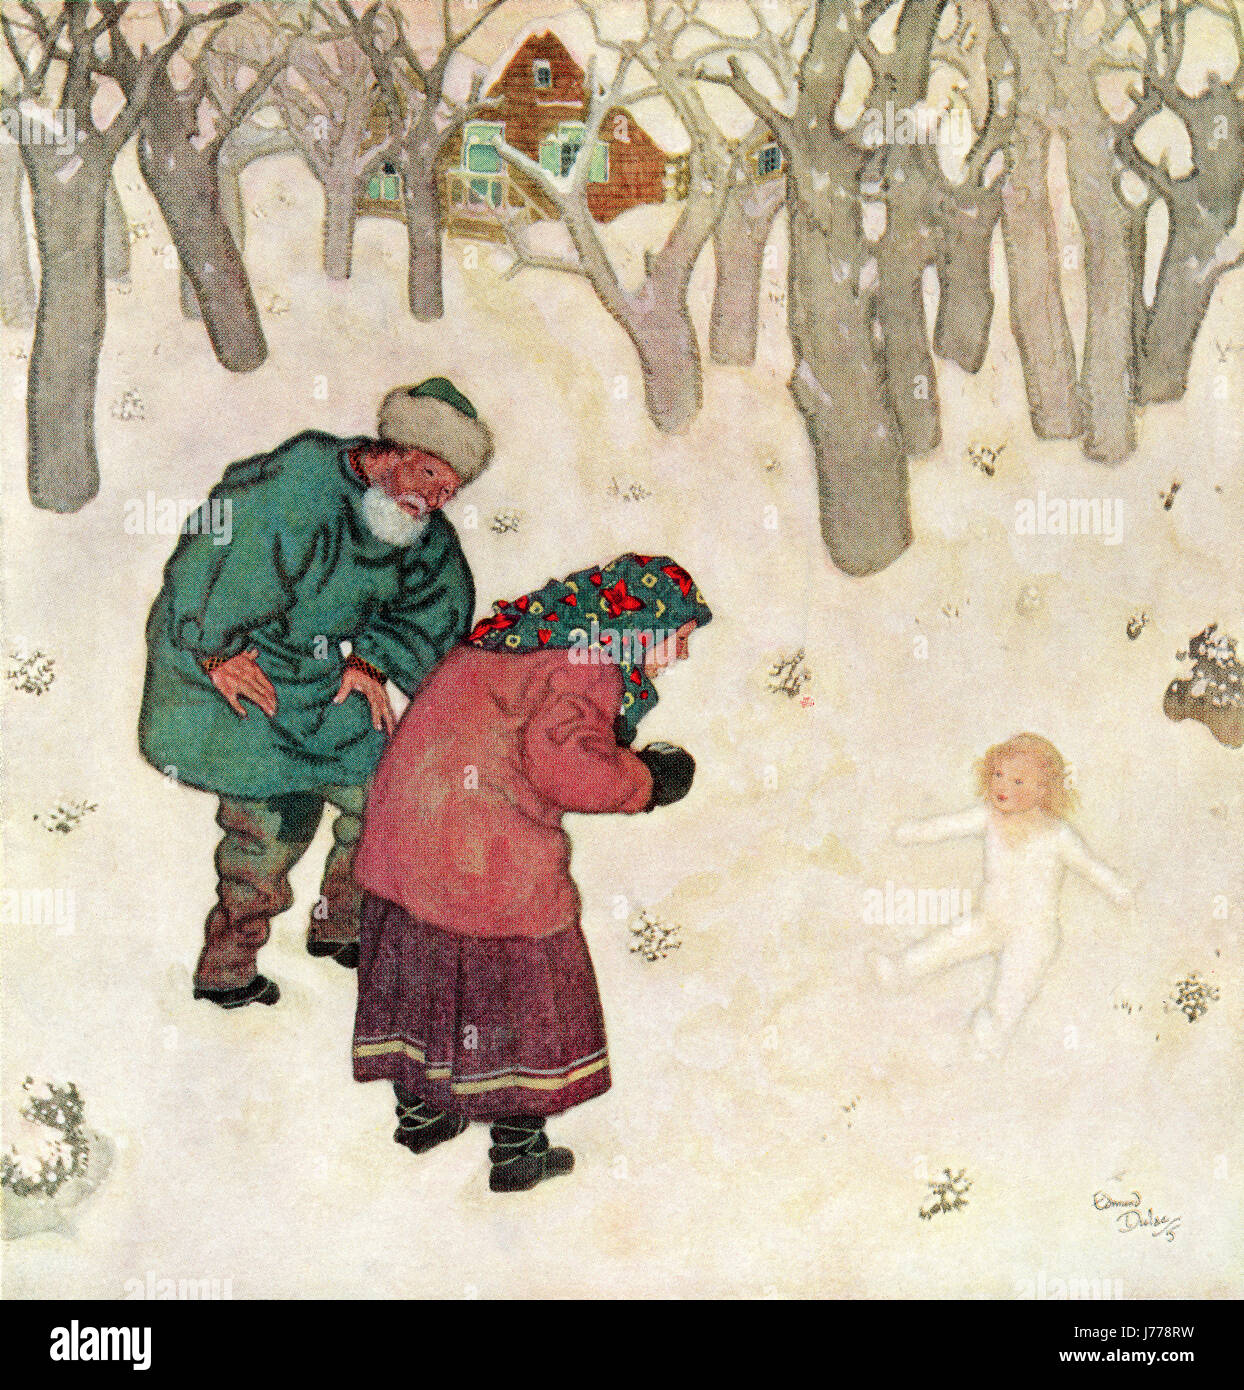 'The daintiest, prettiest little maiden they had ever seen'.  Illustration from the Russian fairytale Snegorotchka. - Stock Image